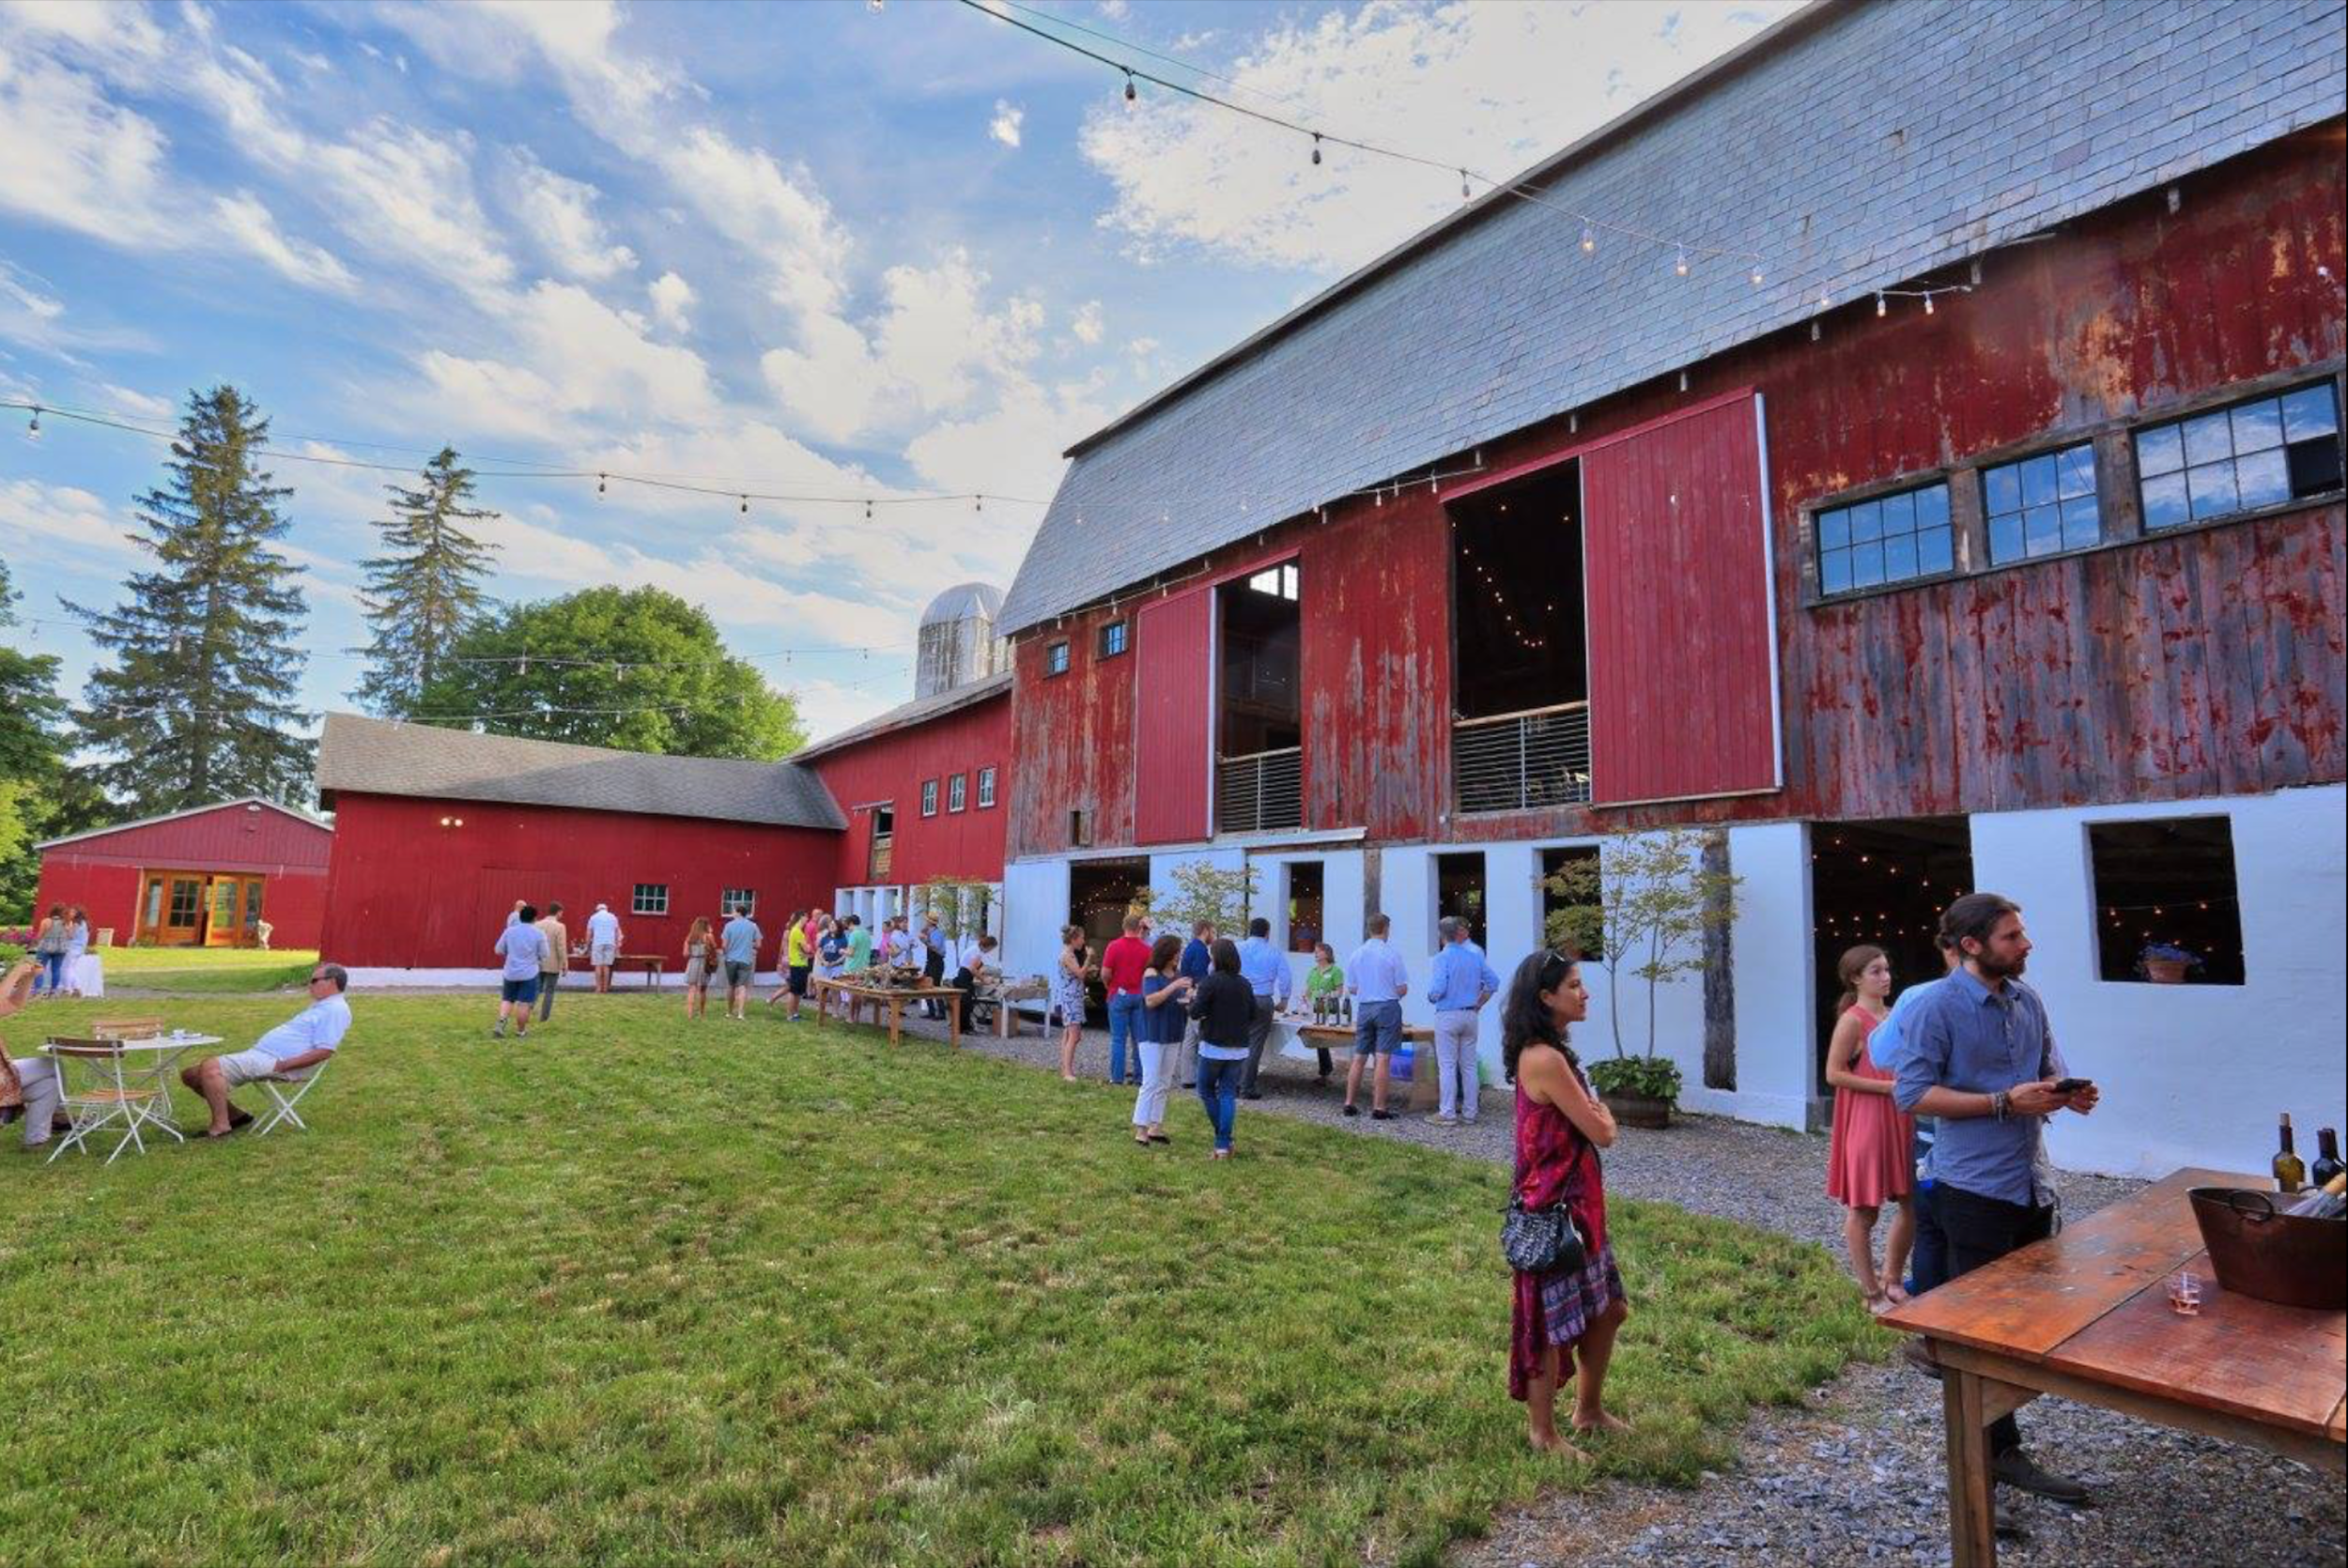 Image from The North Farm premiere venue in Geneva, New York on 17 June 2017. Find more images and information at facebook.com/uncorkedpotential